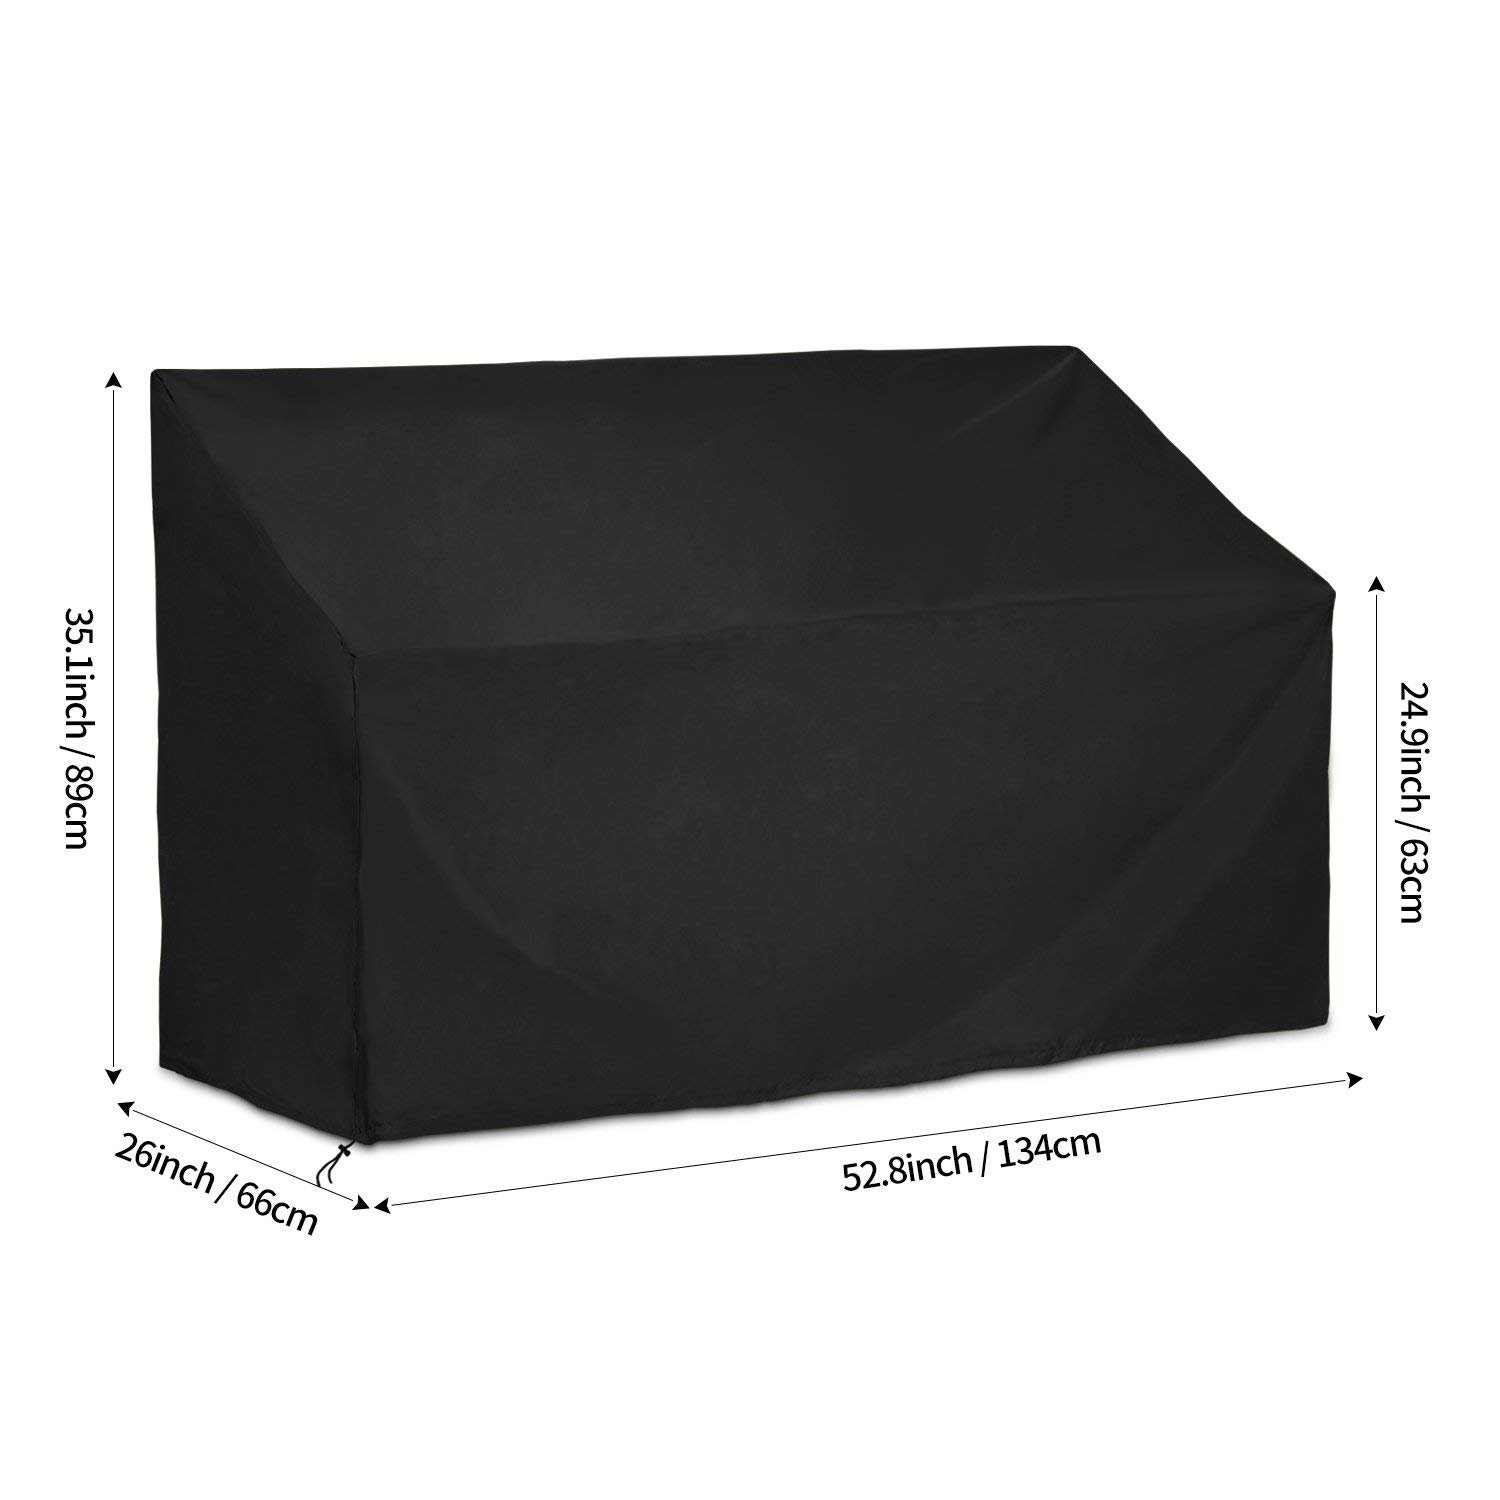 Dokon 2 Seater 3 Seater Chair Cover